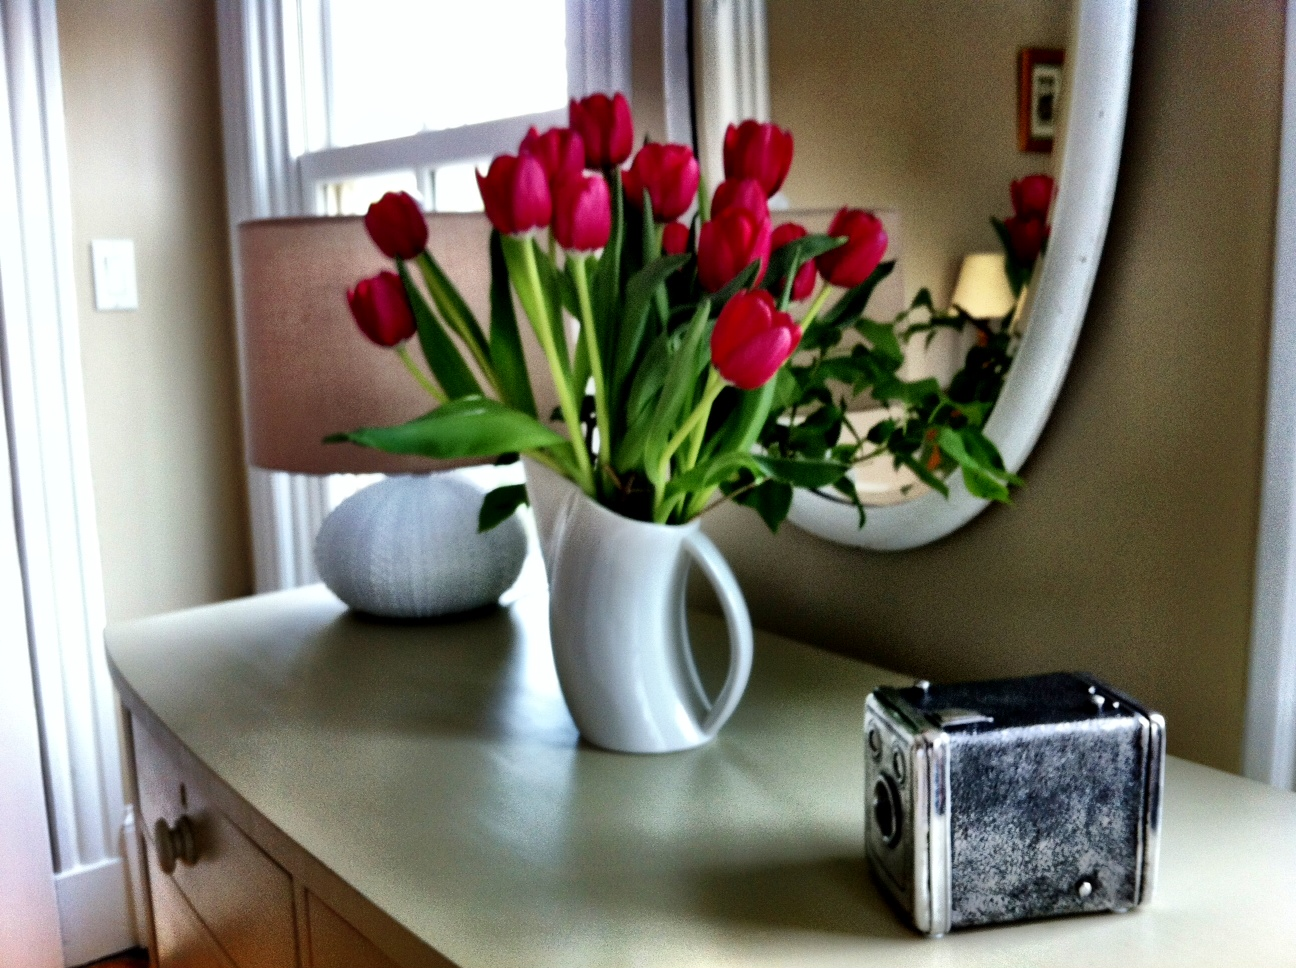 Romance starts with red tulips and clean modern design on Cape Cod.